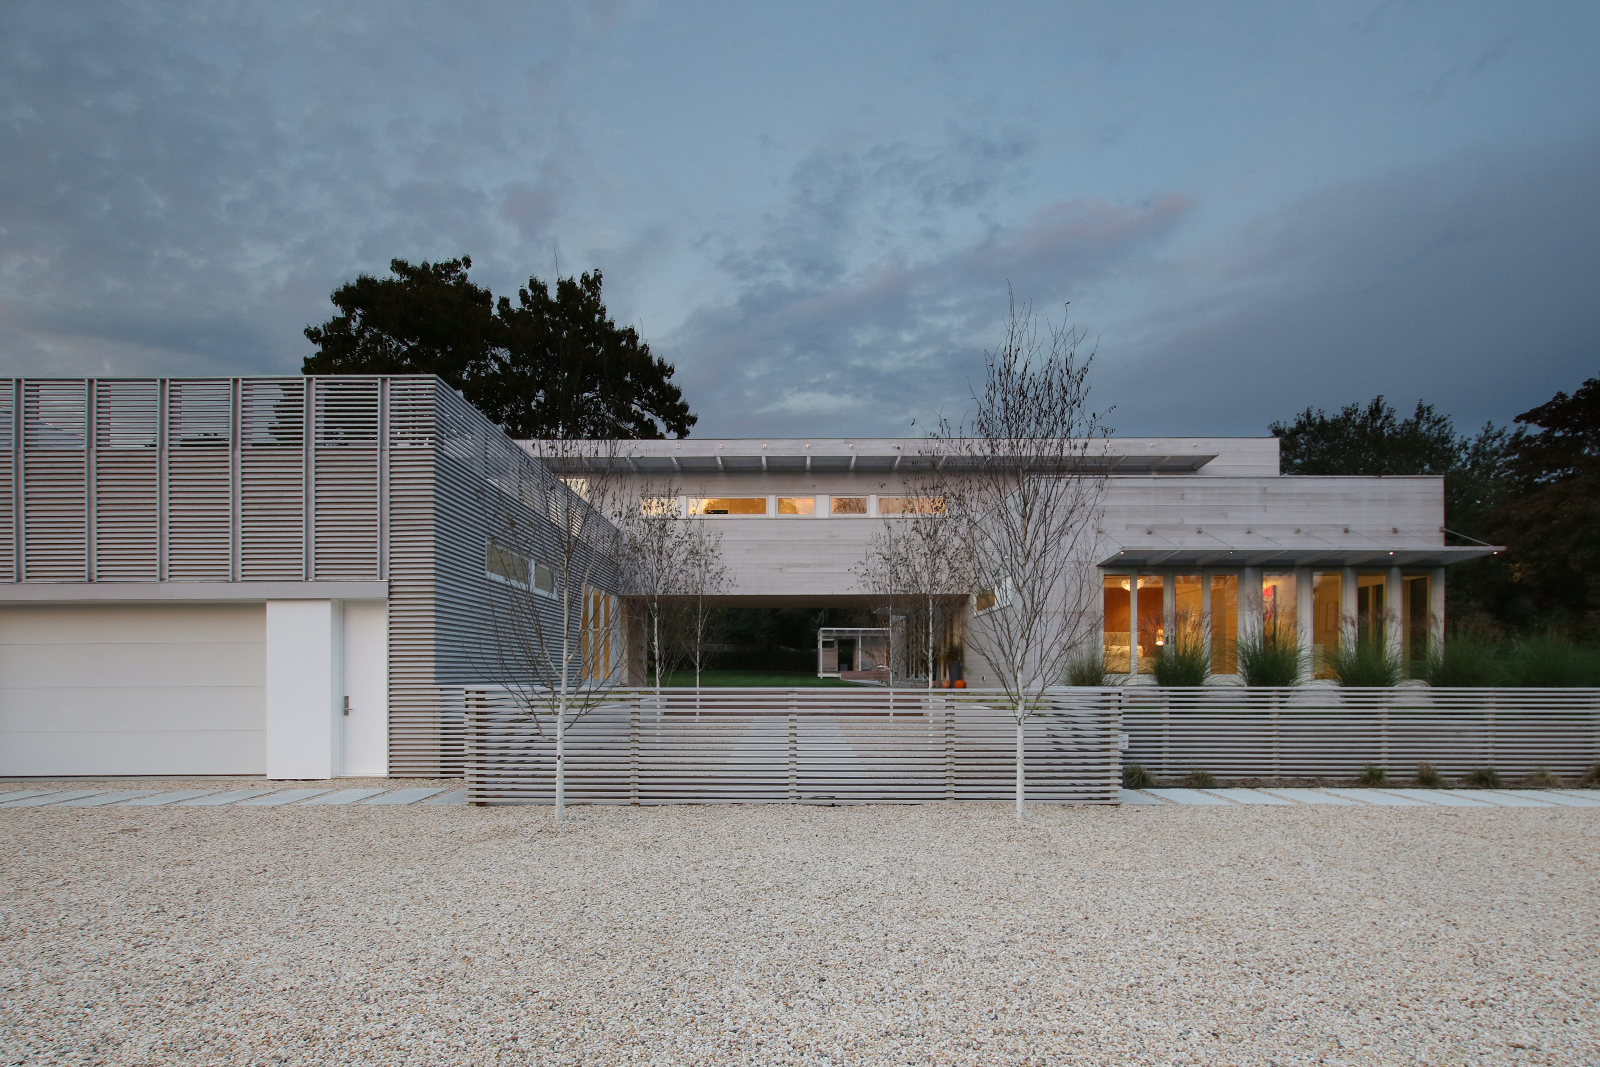 11-re4a-resolution-4-architecture-modern-modular-prefab-bridgehampton house-exterior-dusk.jpg